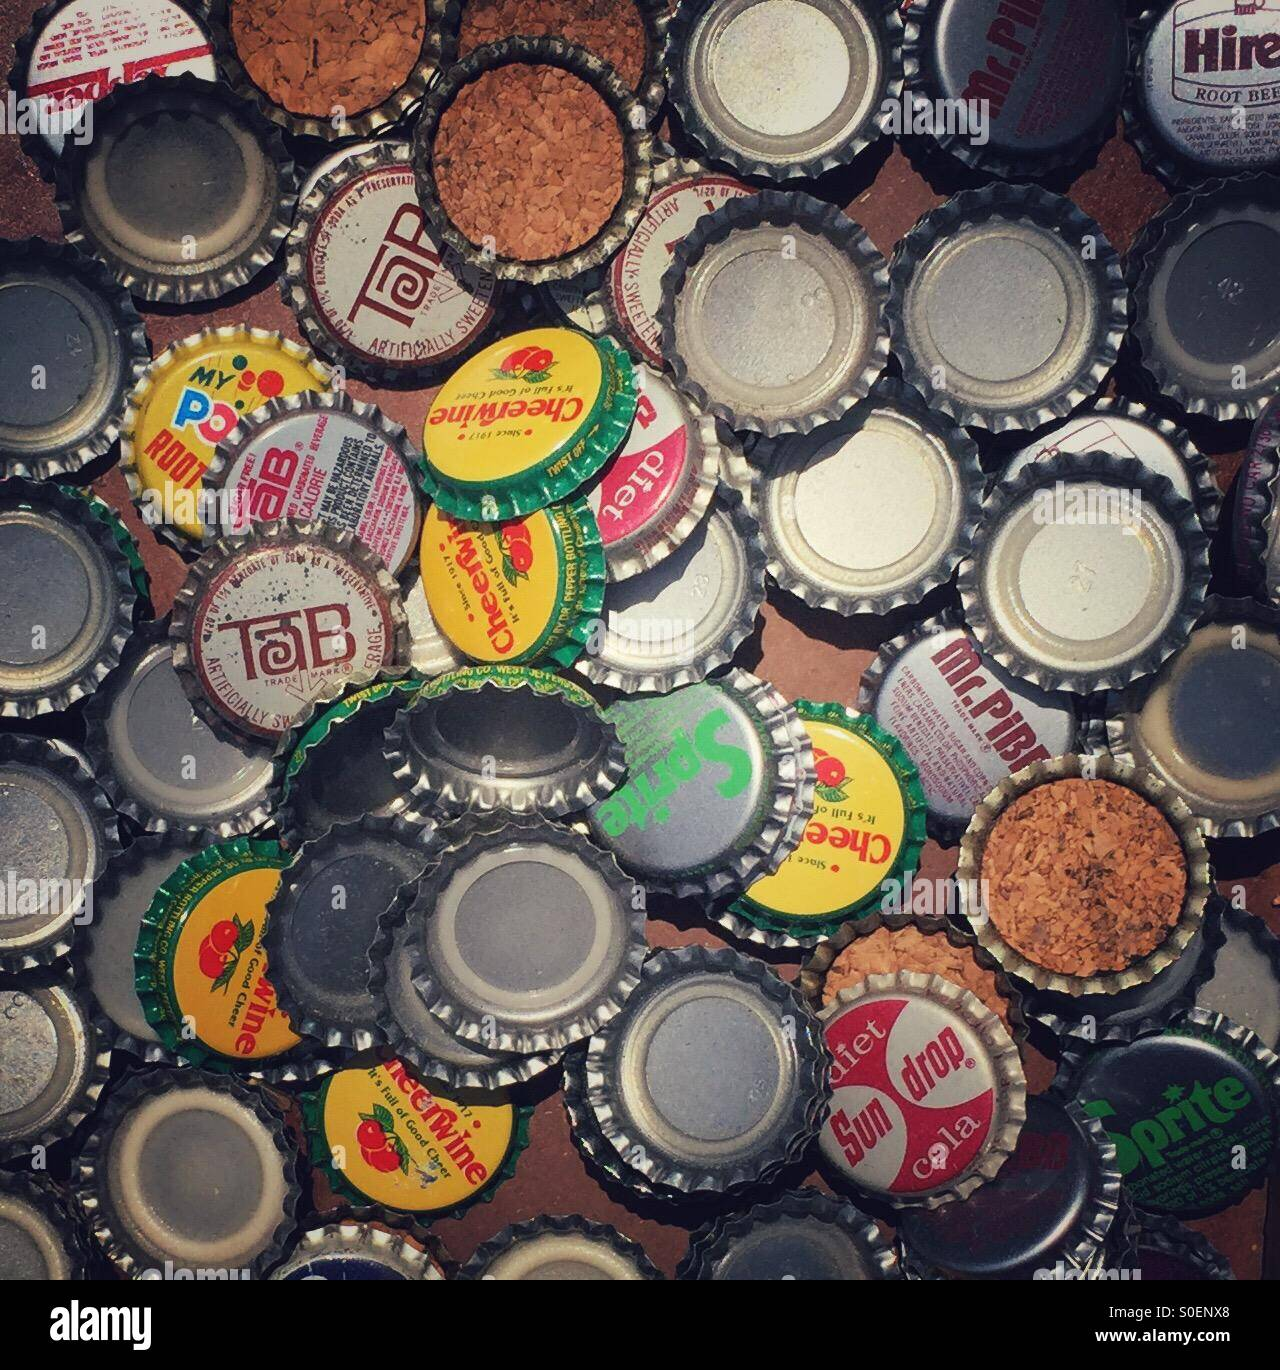 A collection of old vintage bottle caps from various types of sodas. - Stock Image